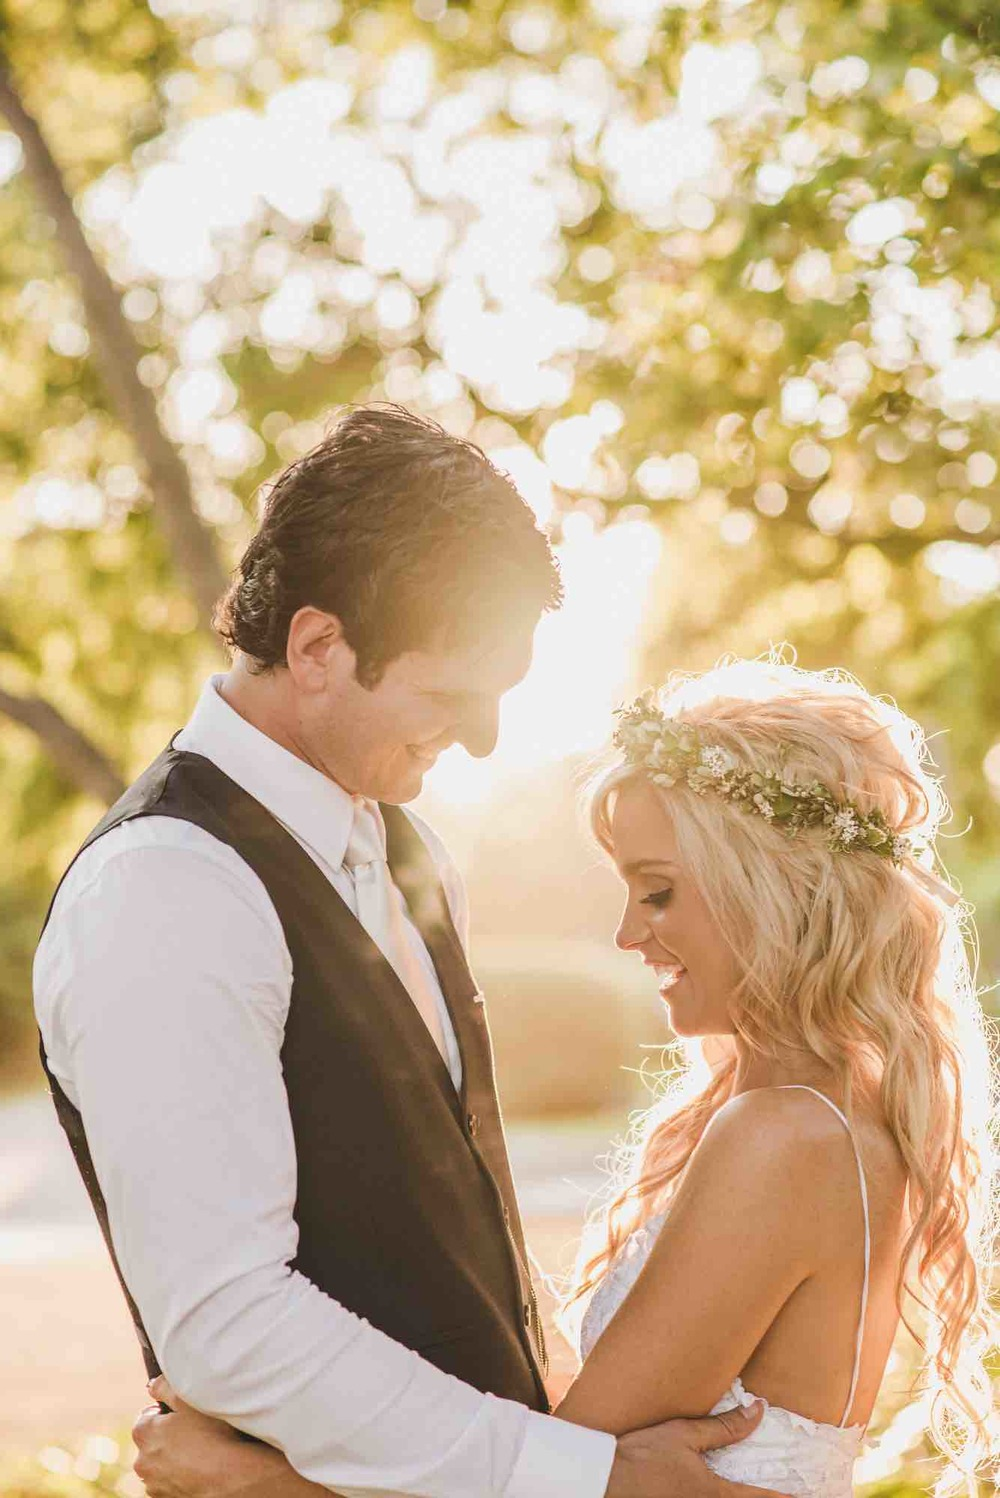 Bride and Groom in Warm Sunlight